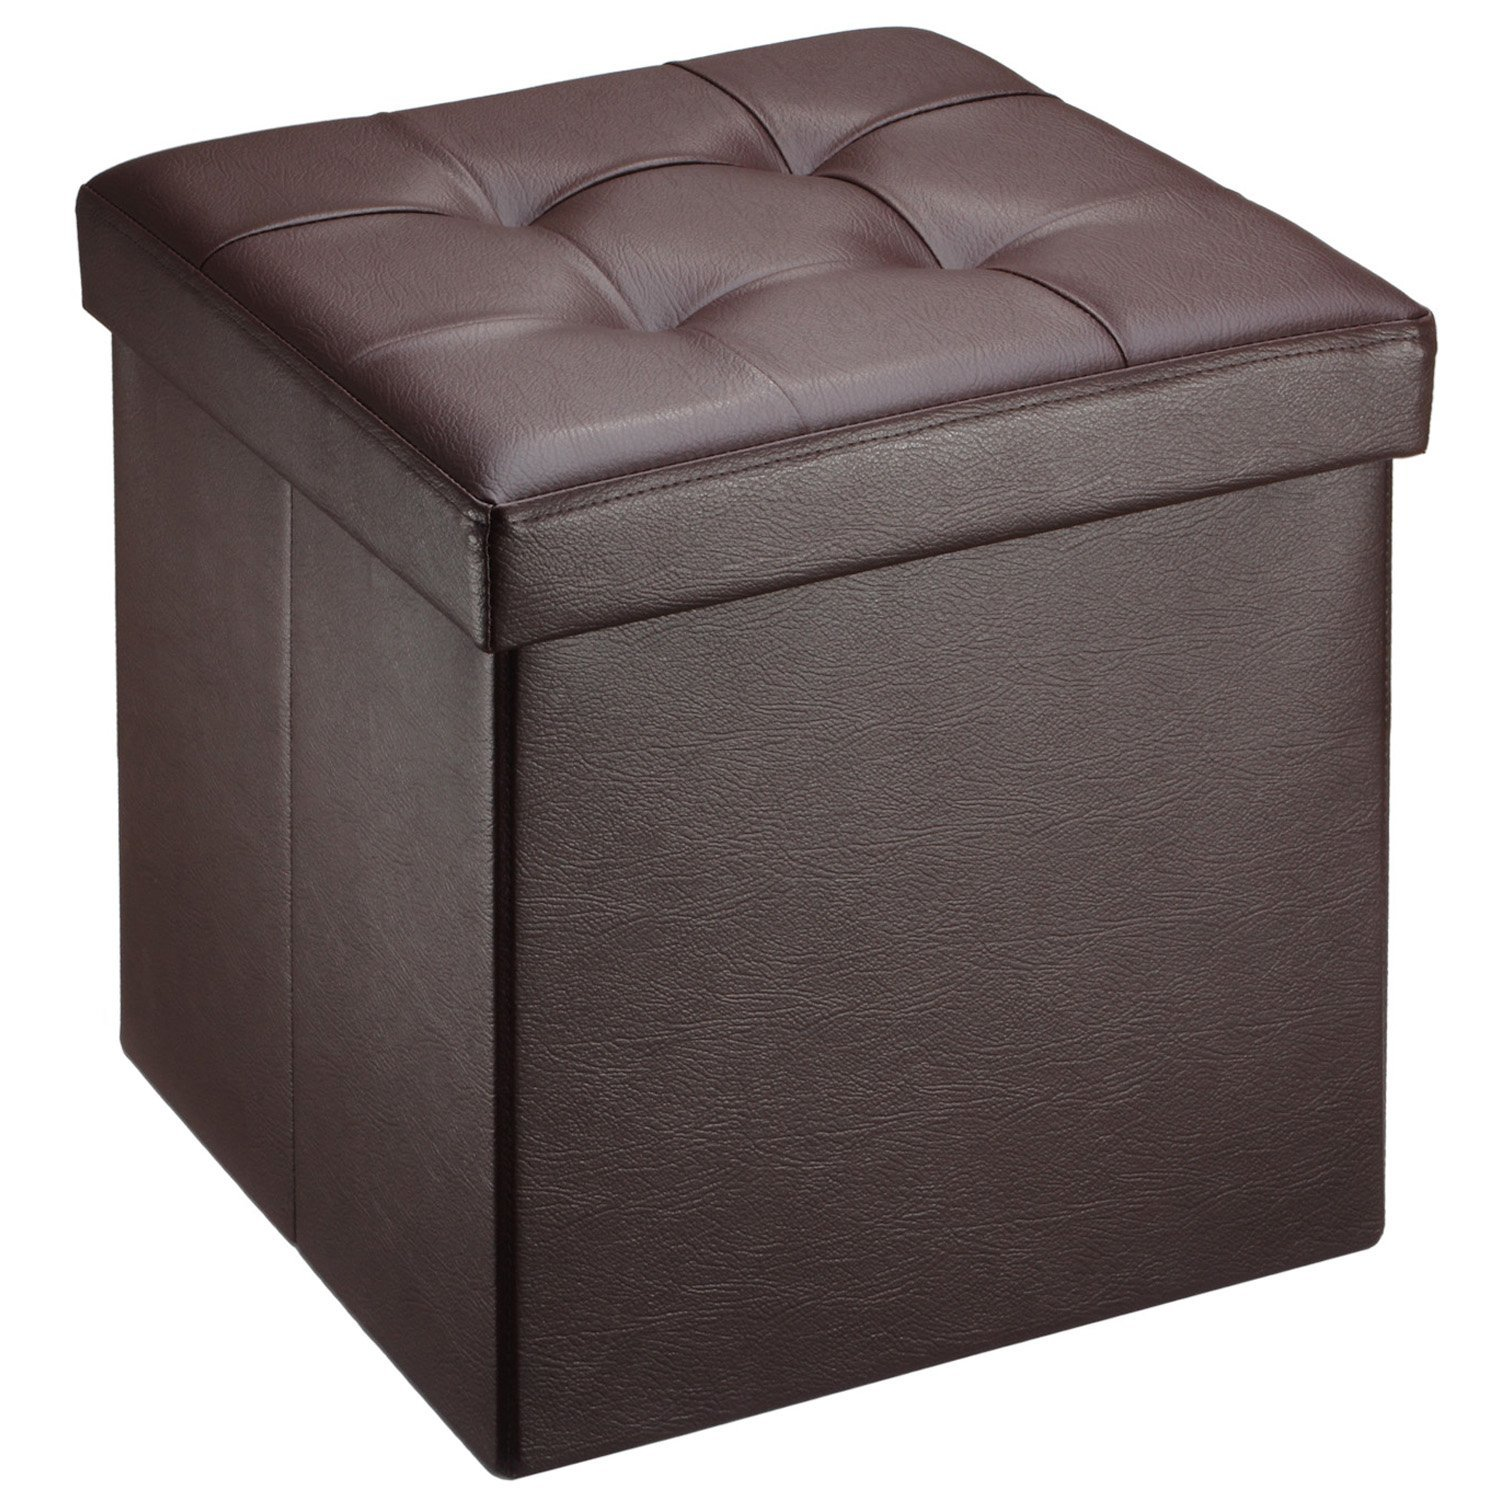 Ollieroo Faux Leather Folding Collapsible Storage Ottoman, Brown